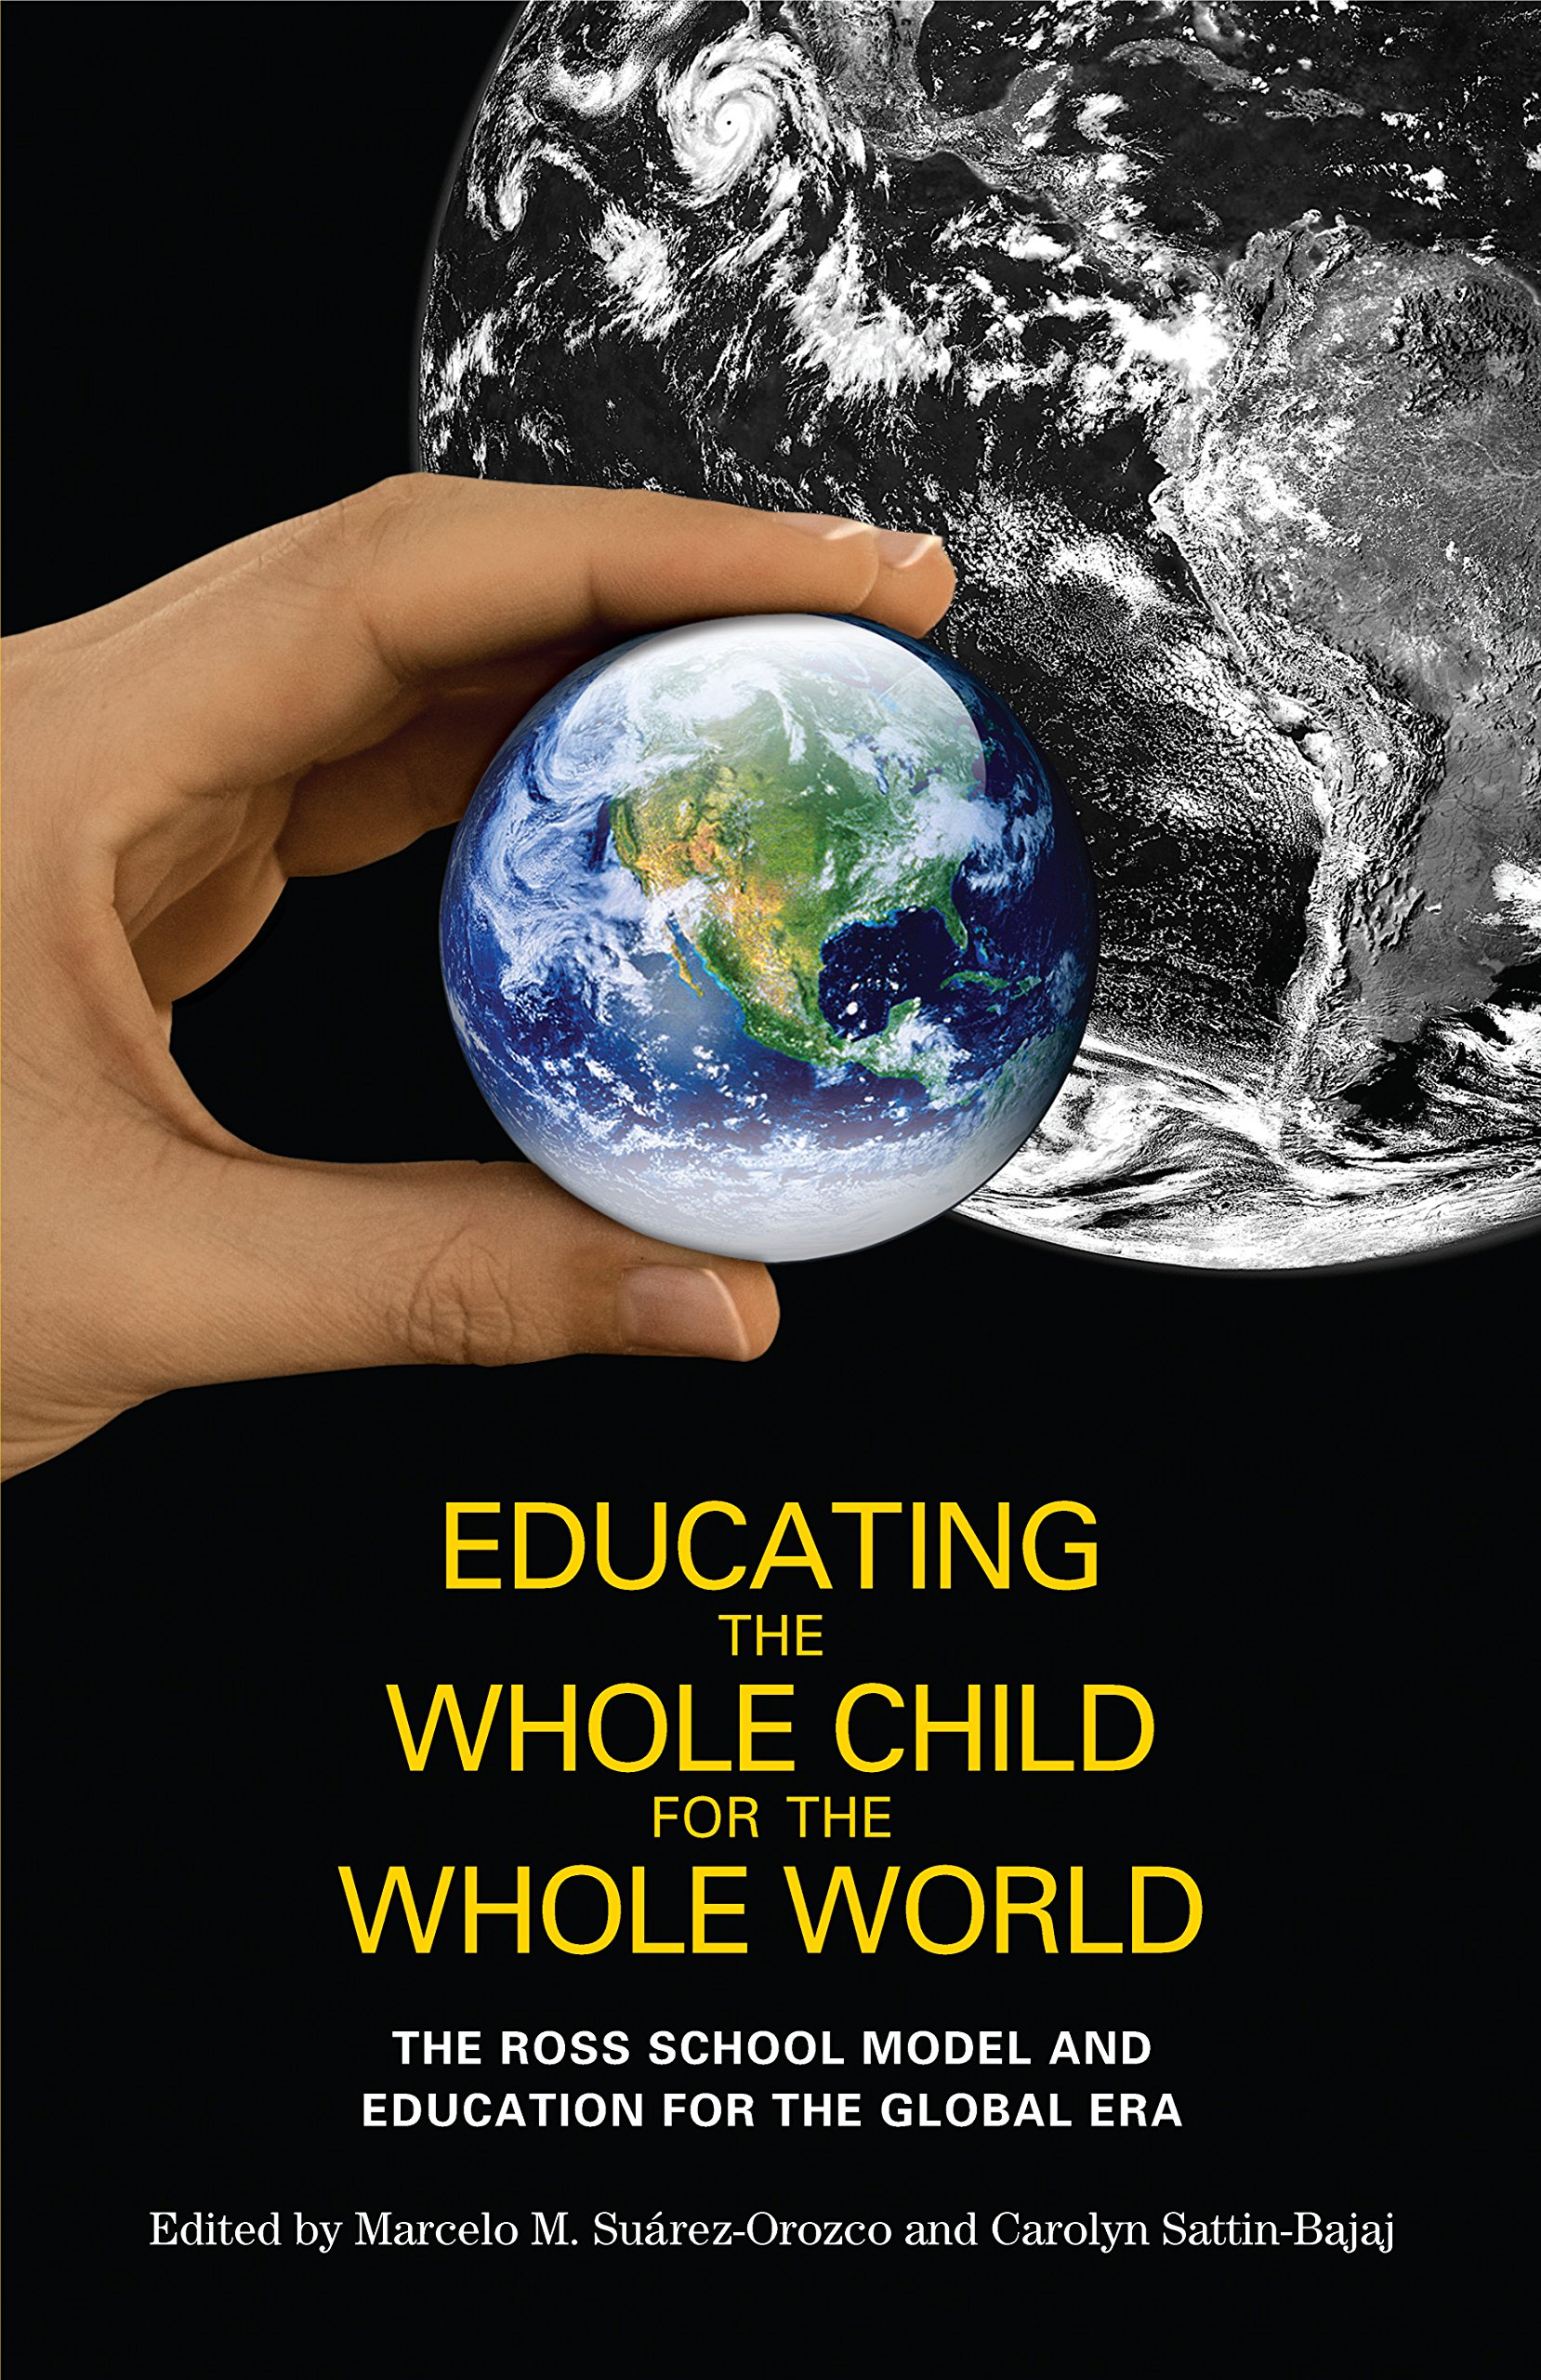 The Ross School Model and Education for the Global Era